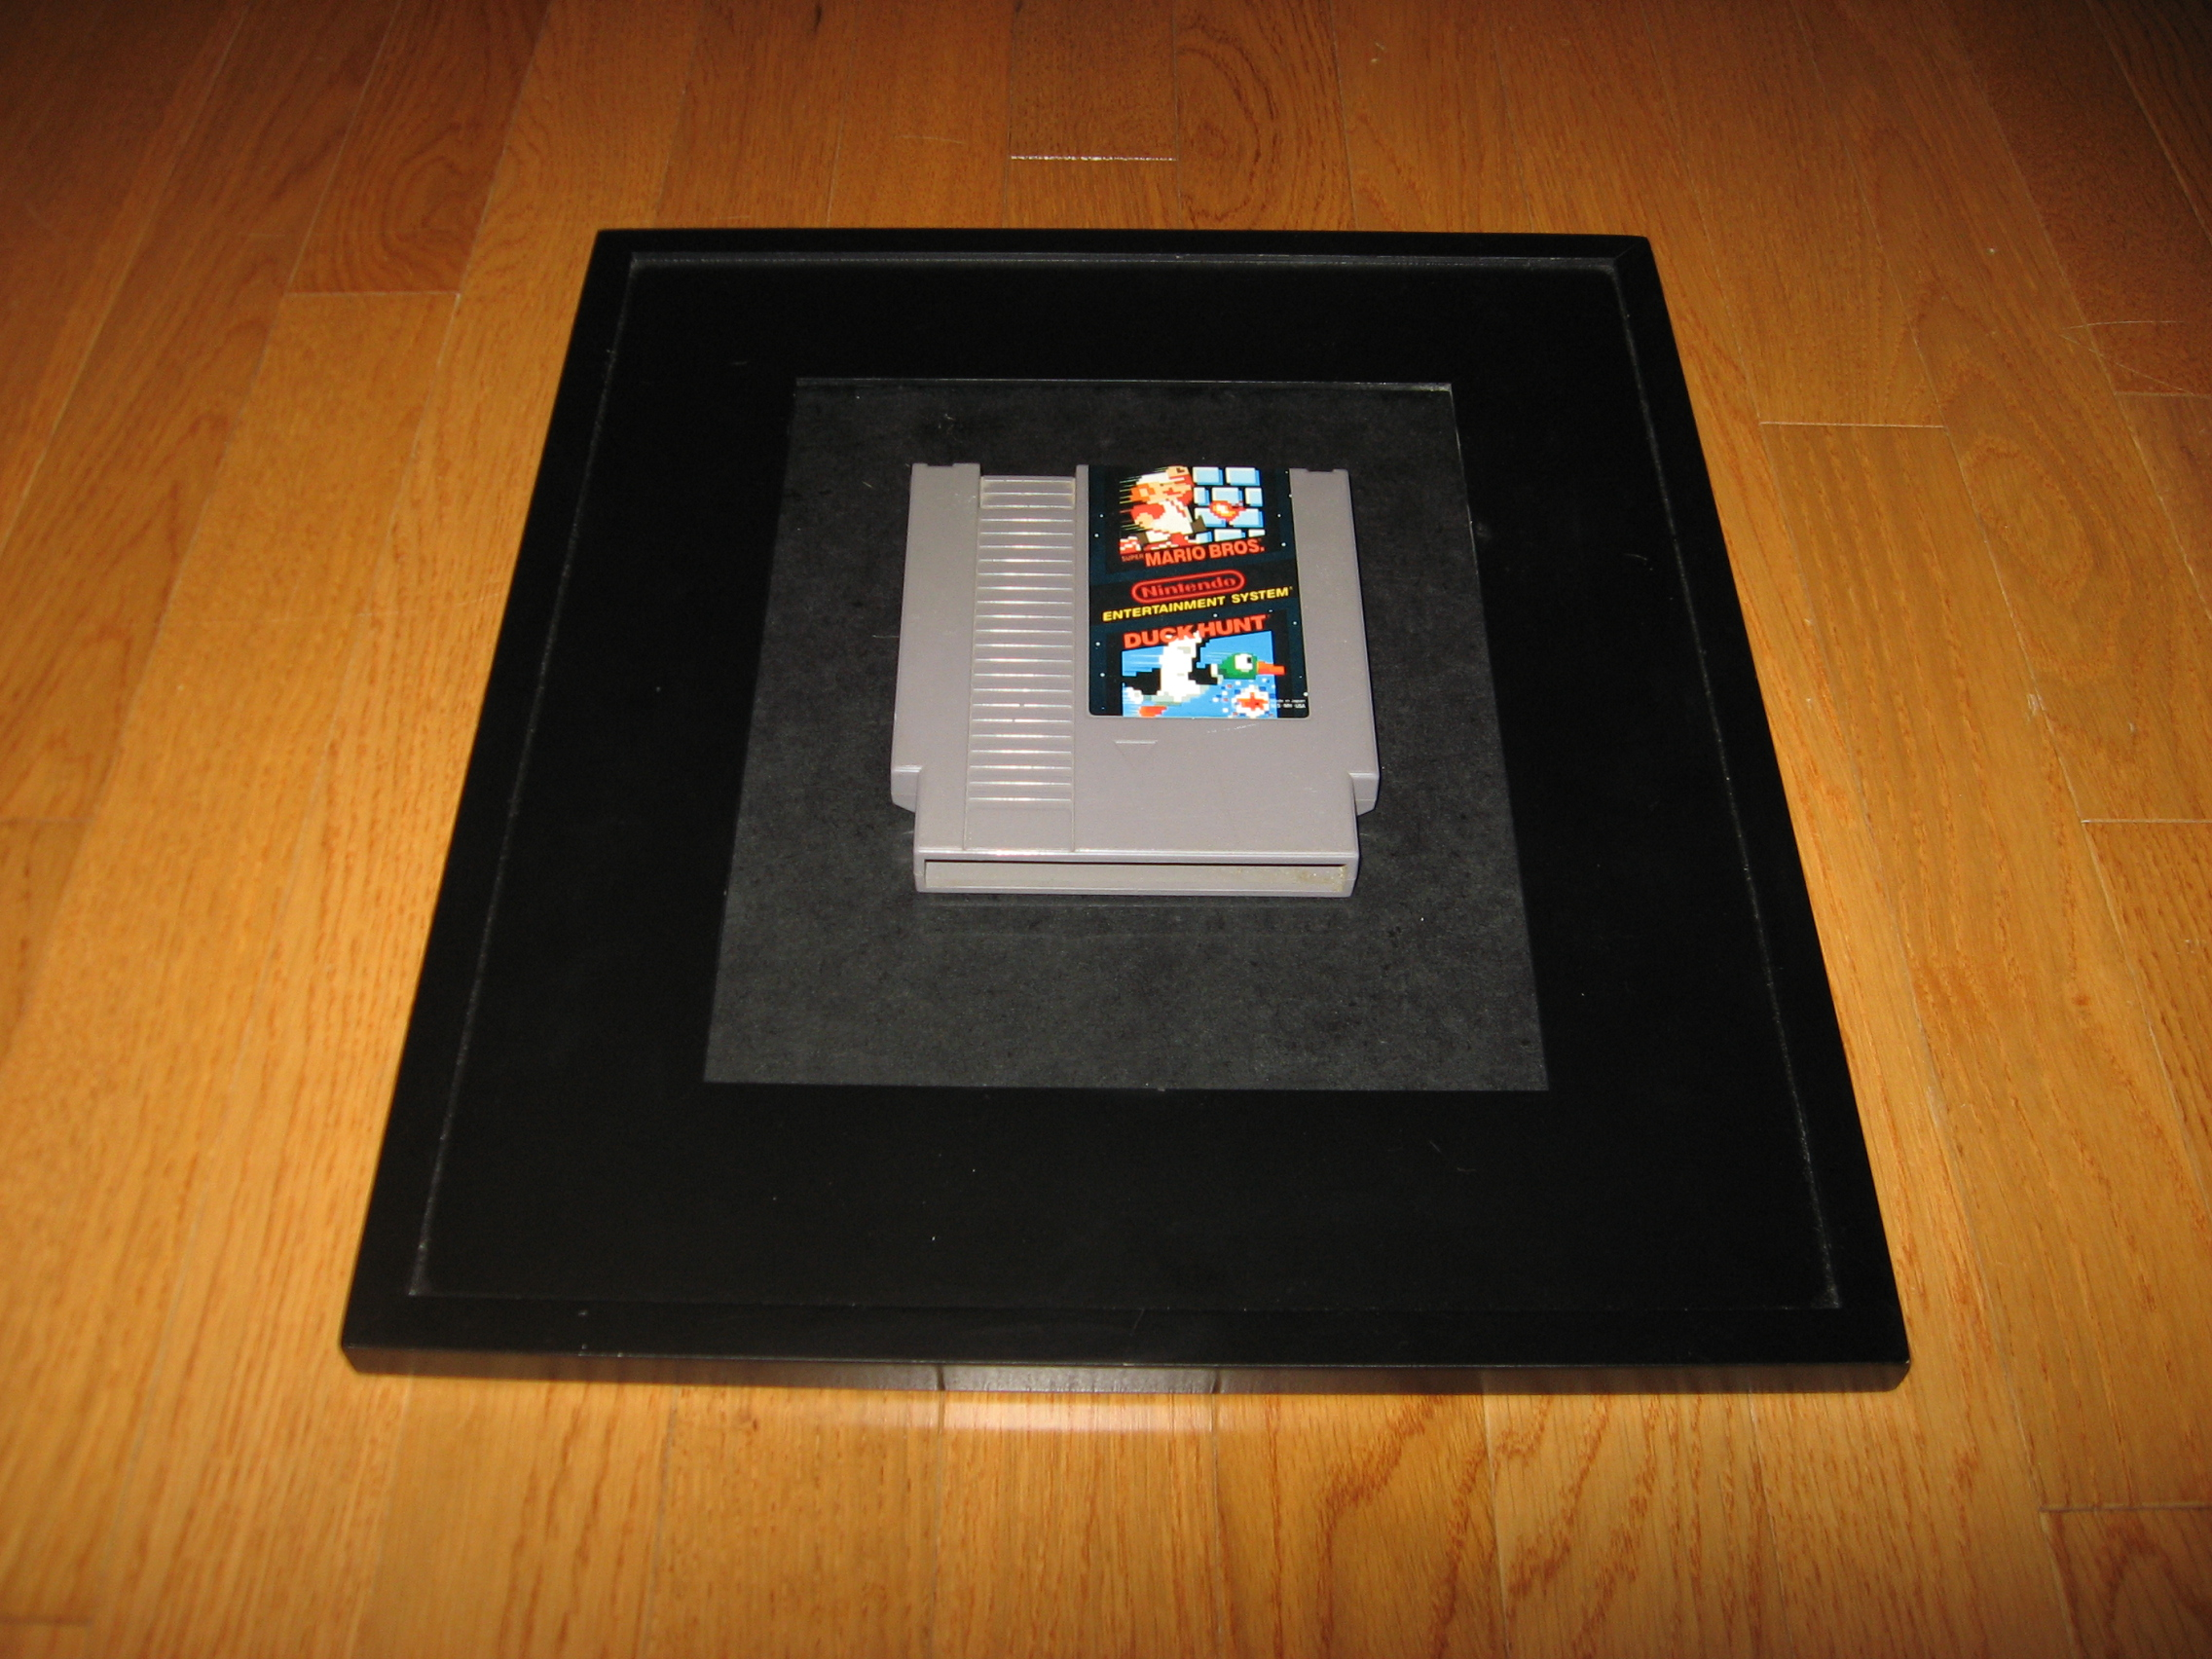 Picture of Framed NES Game